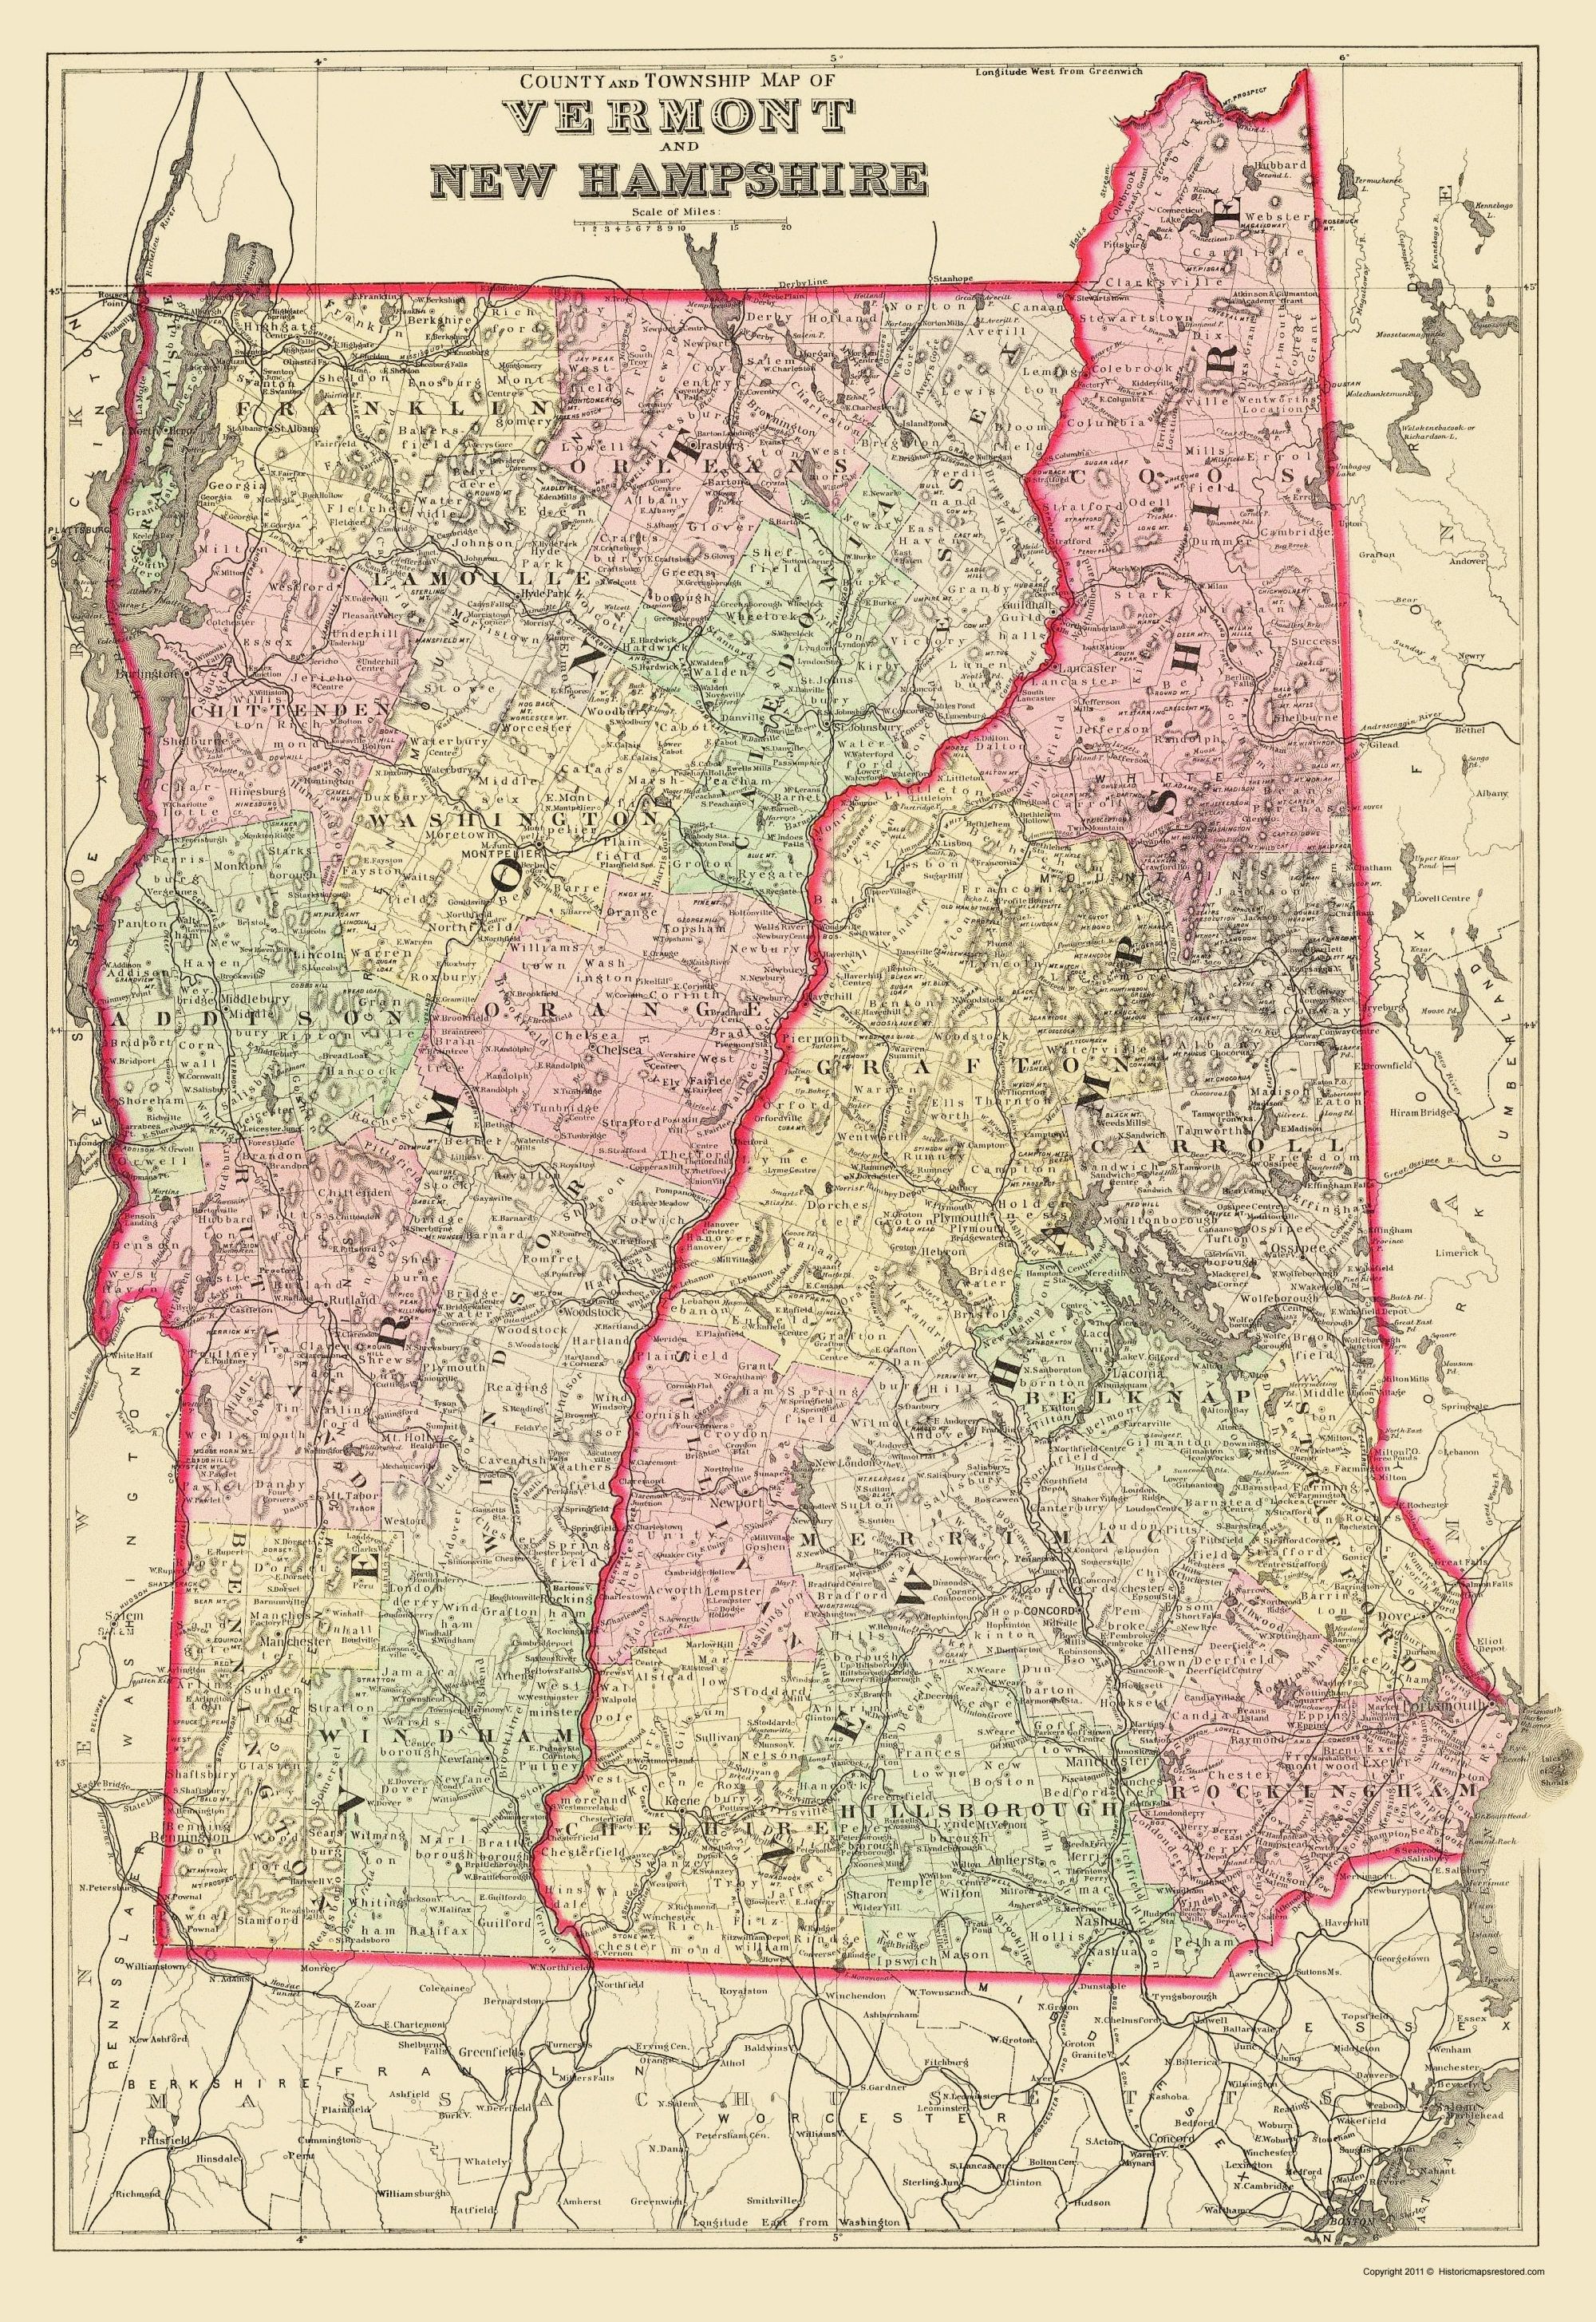 Old State Map Vermont New Hampshire Bradley 1882 23 X 33 46